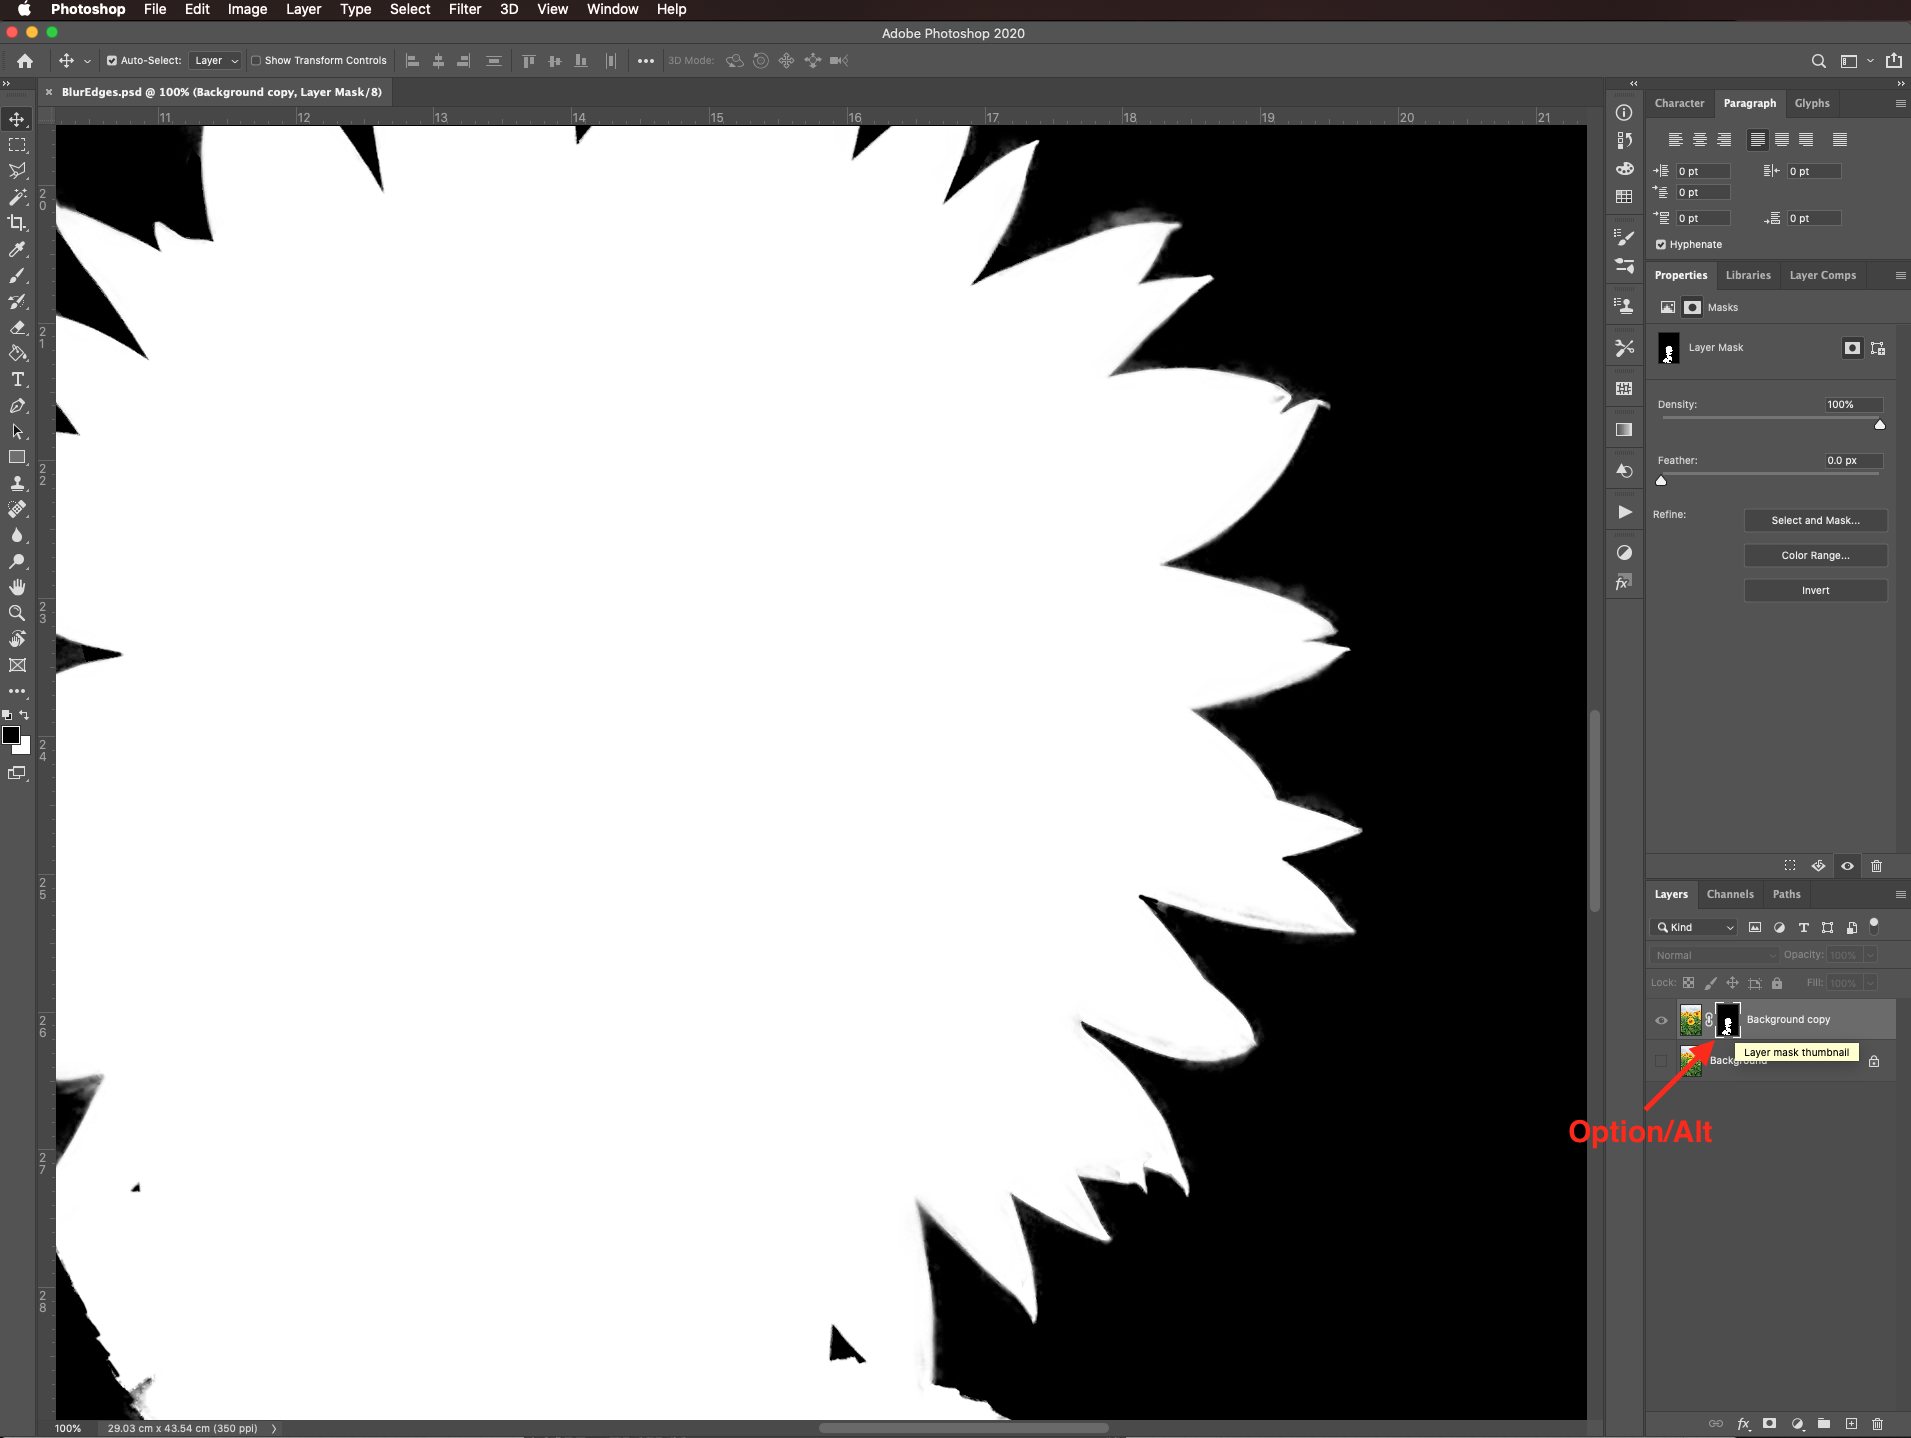 Mask mode in Photoshop